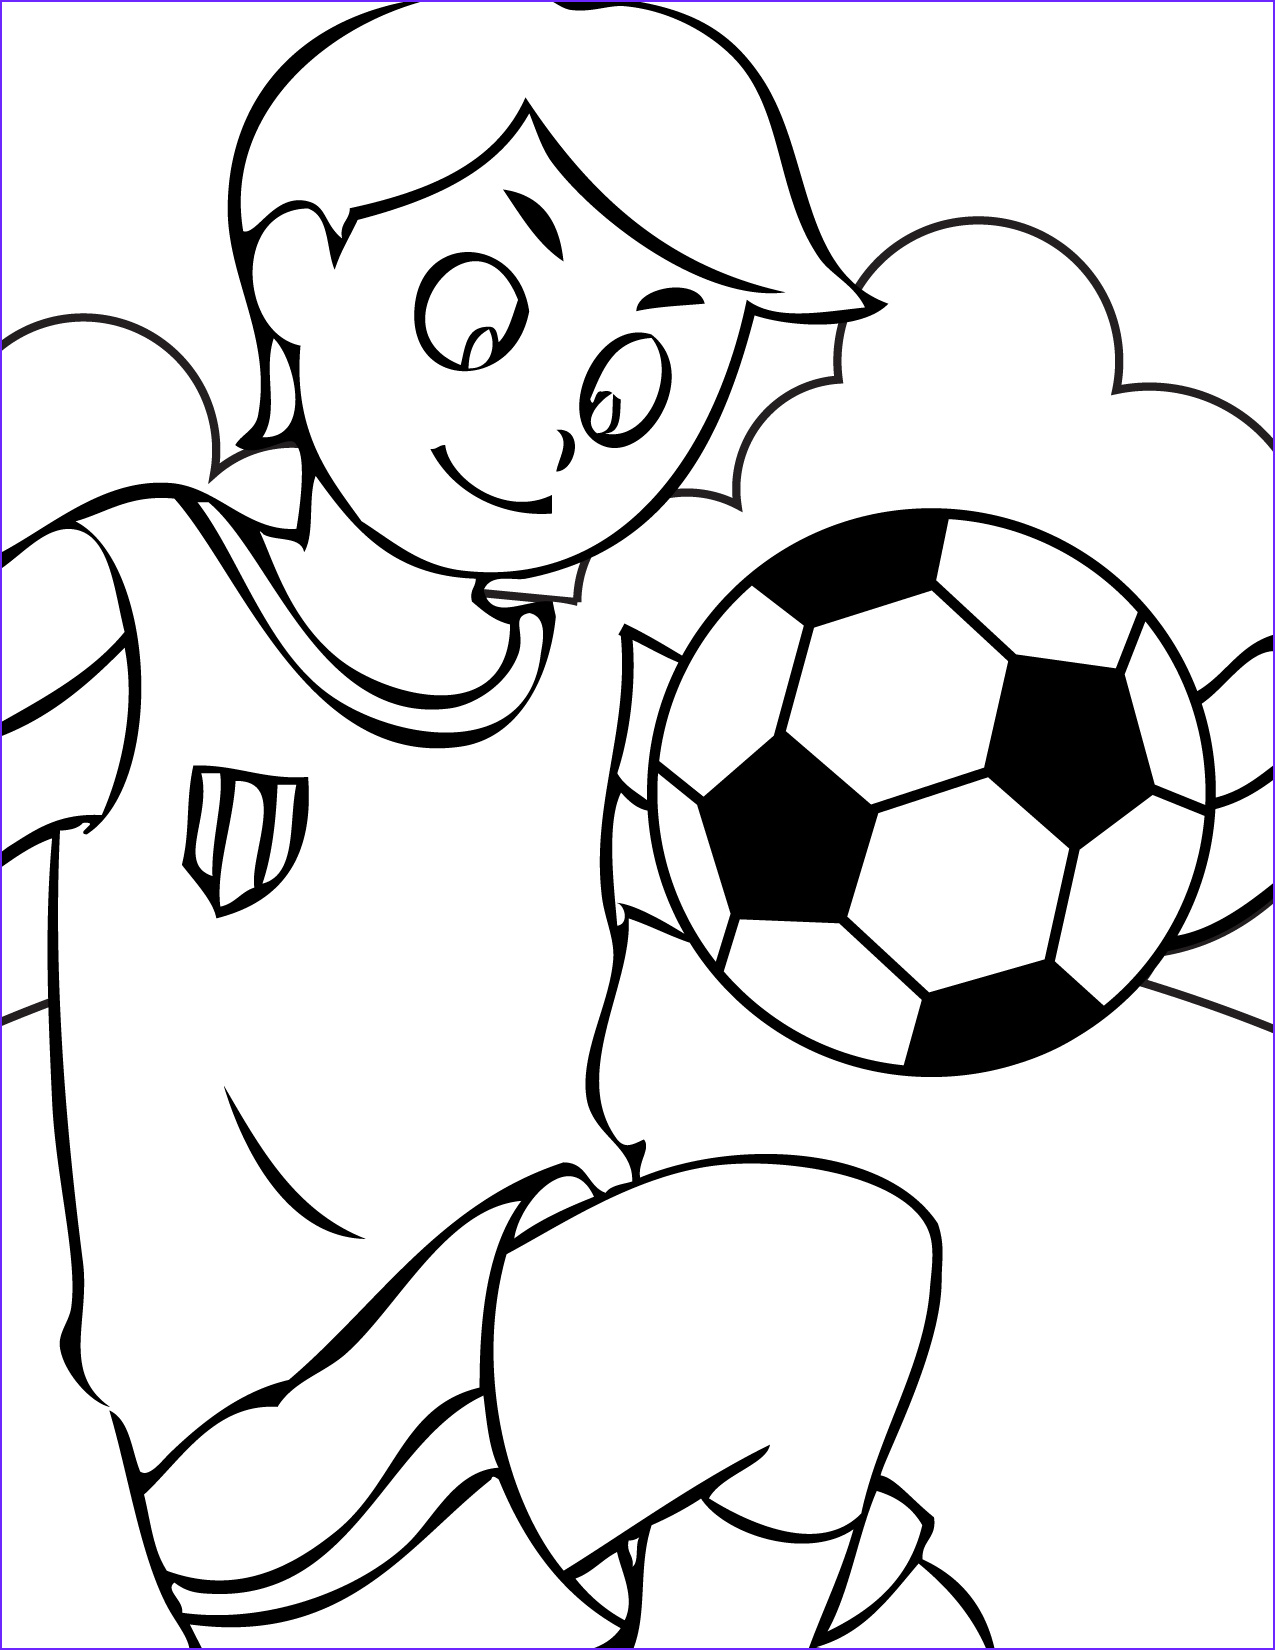 Childrens Printable Coloring Pages Inspirational Stock soccer Coloring Pages 5